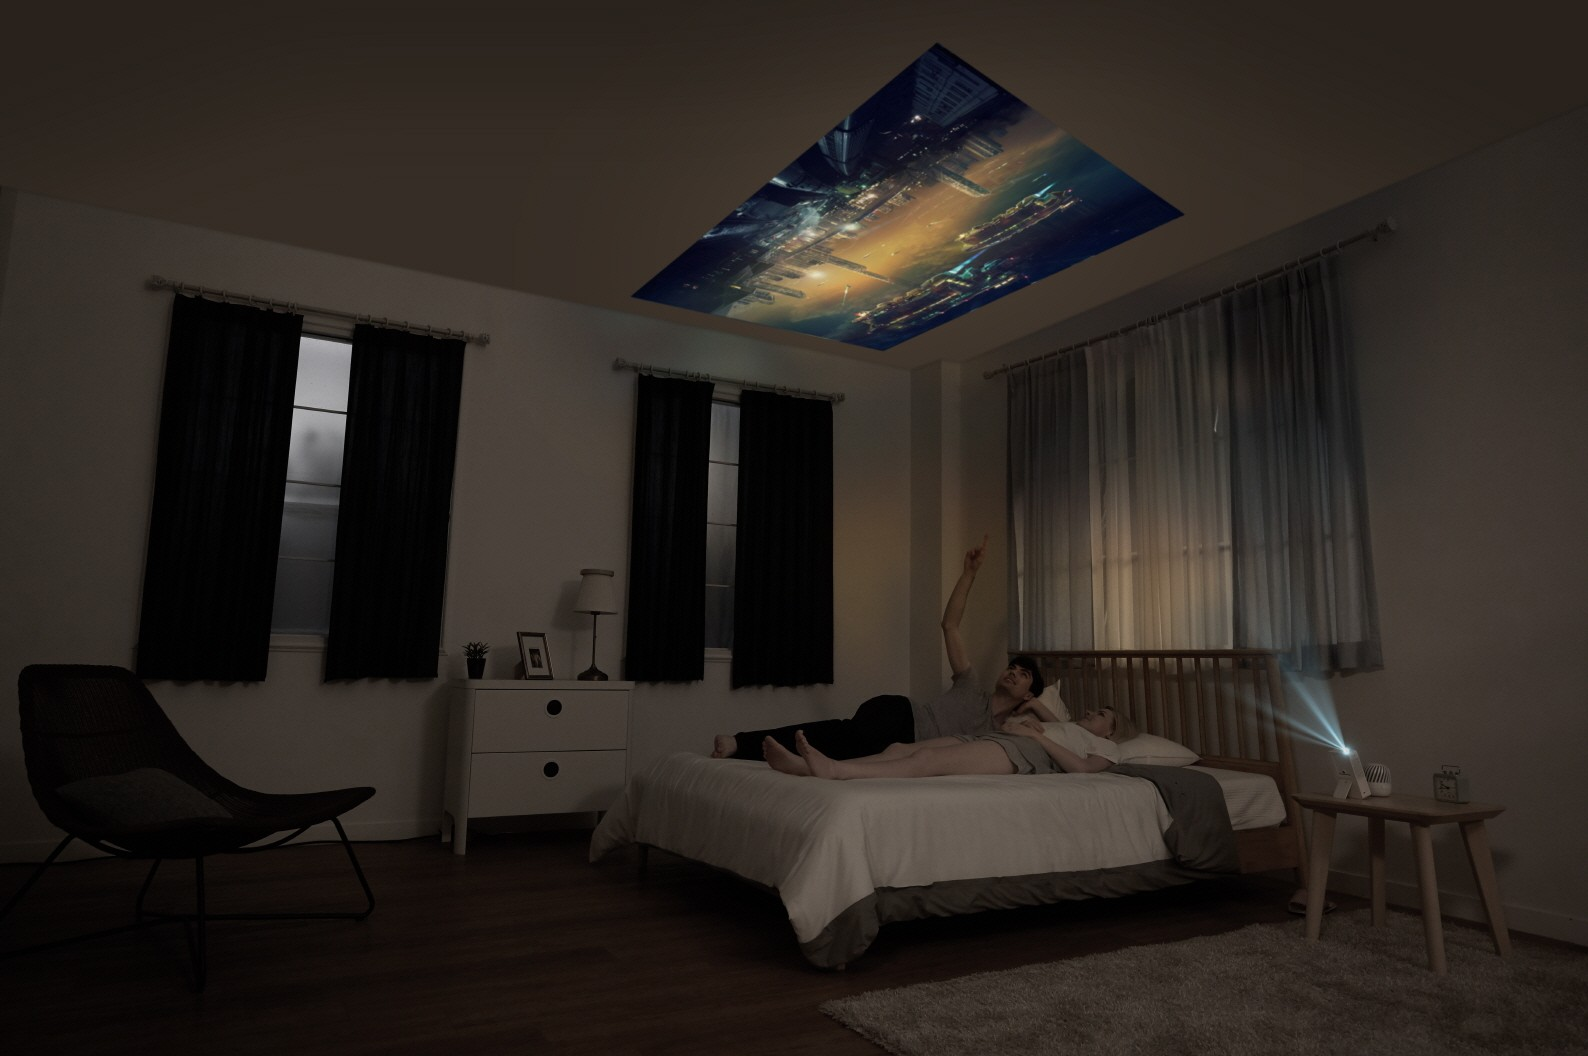 A couple lying in bed while watching a movie projected on the ceiling by the LG MiniBeam Projector